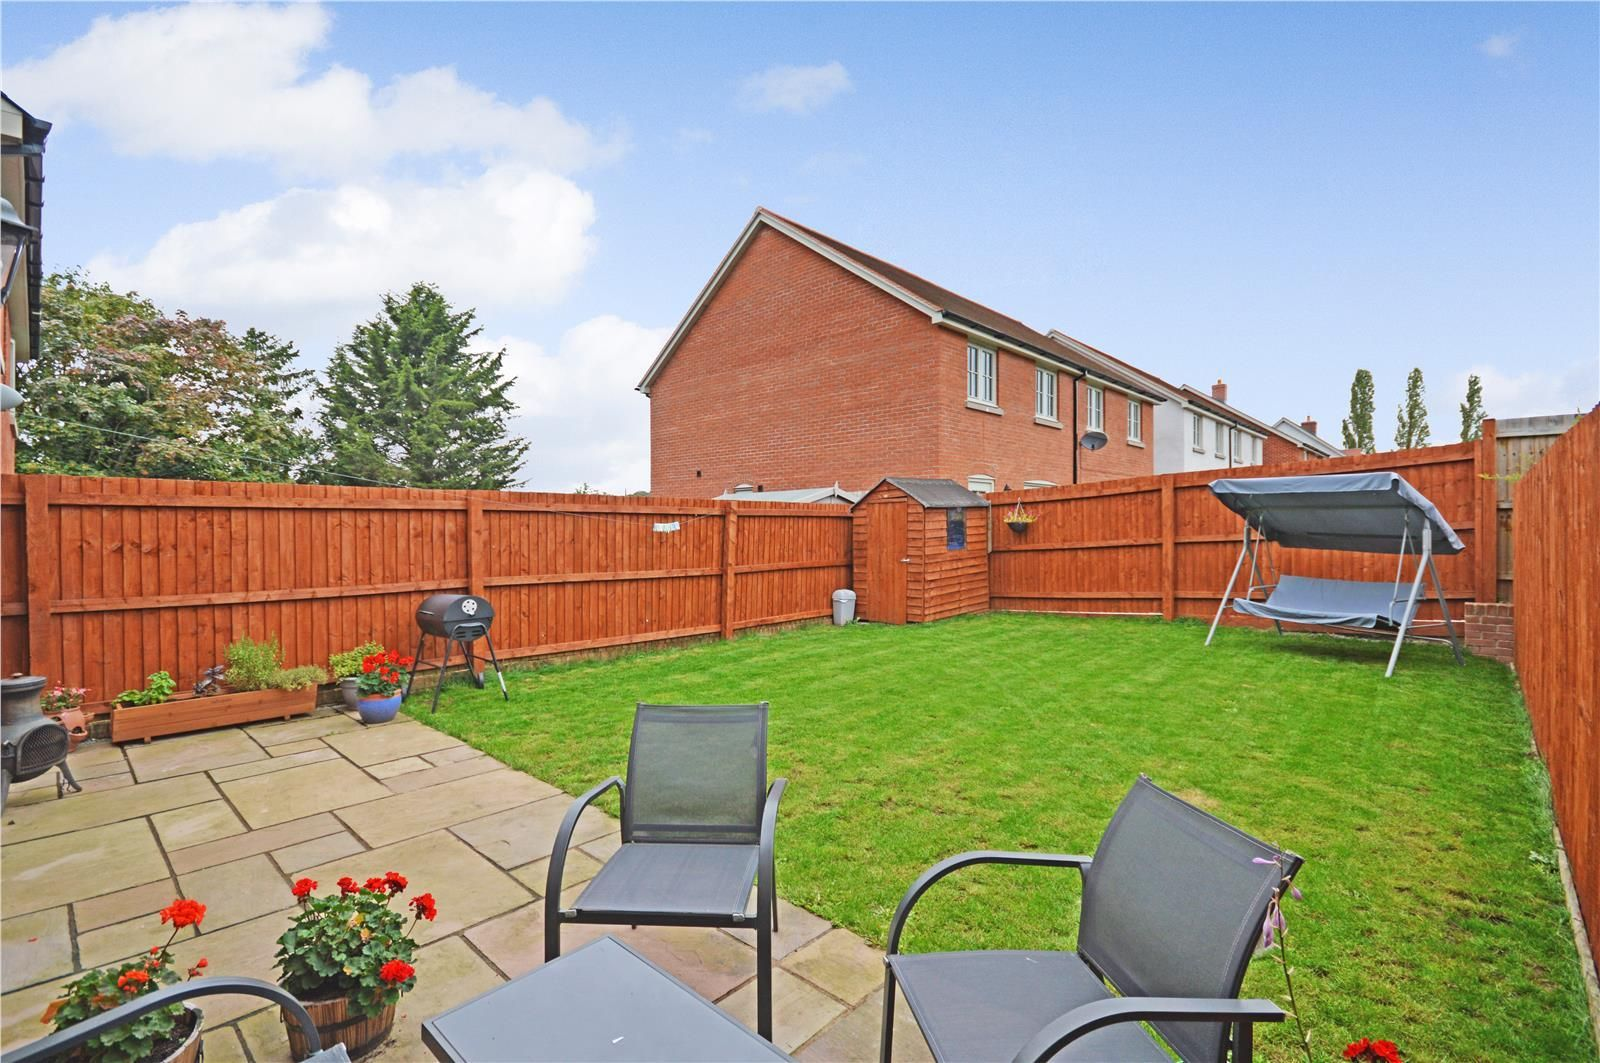 3 bed semi-detached for sale in Bodenham 6